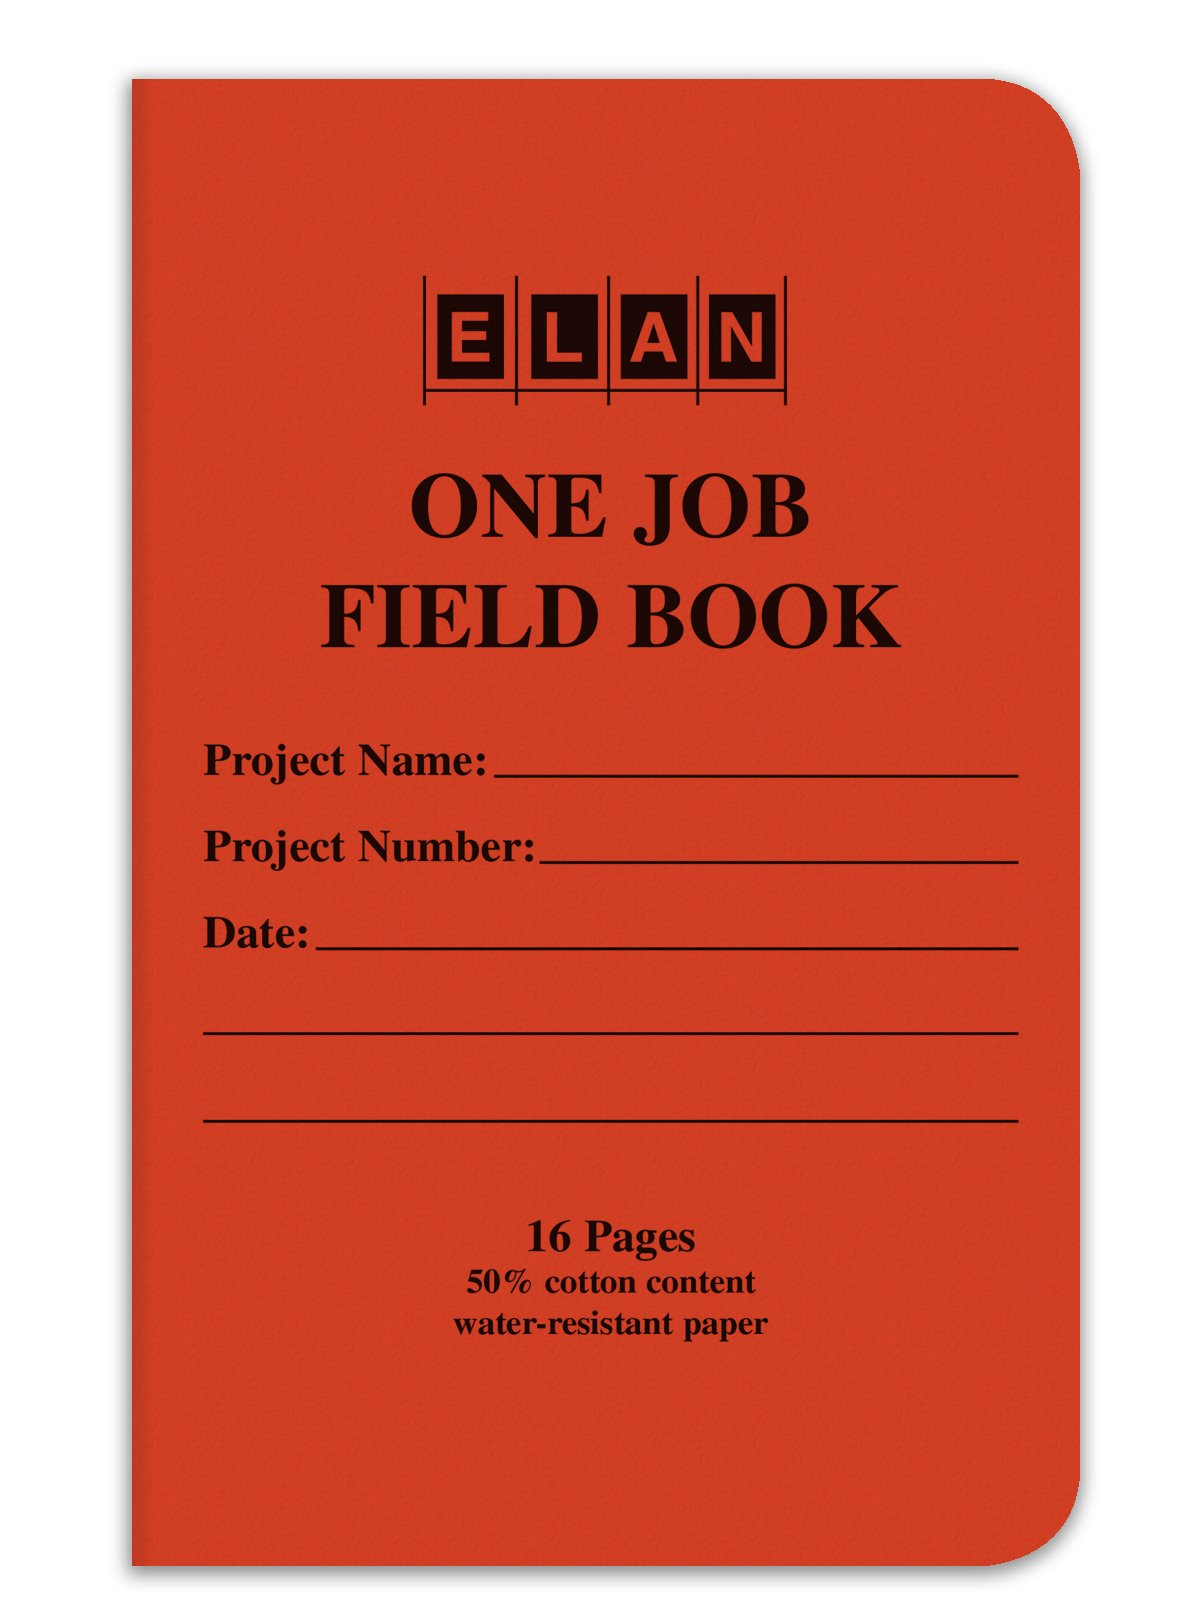 Elan Publishing Company One-Job Saddle Stitched Field Surveying Book 4 ⅝ x 7 Orange Stiff Cover (Pack of 24) by Elan Publishing Company